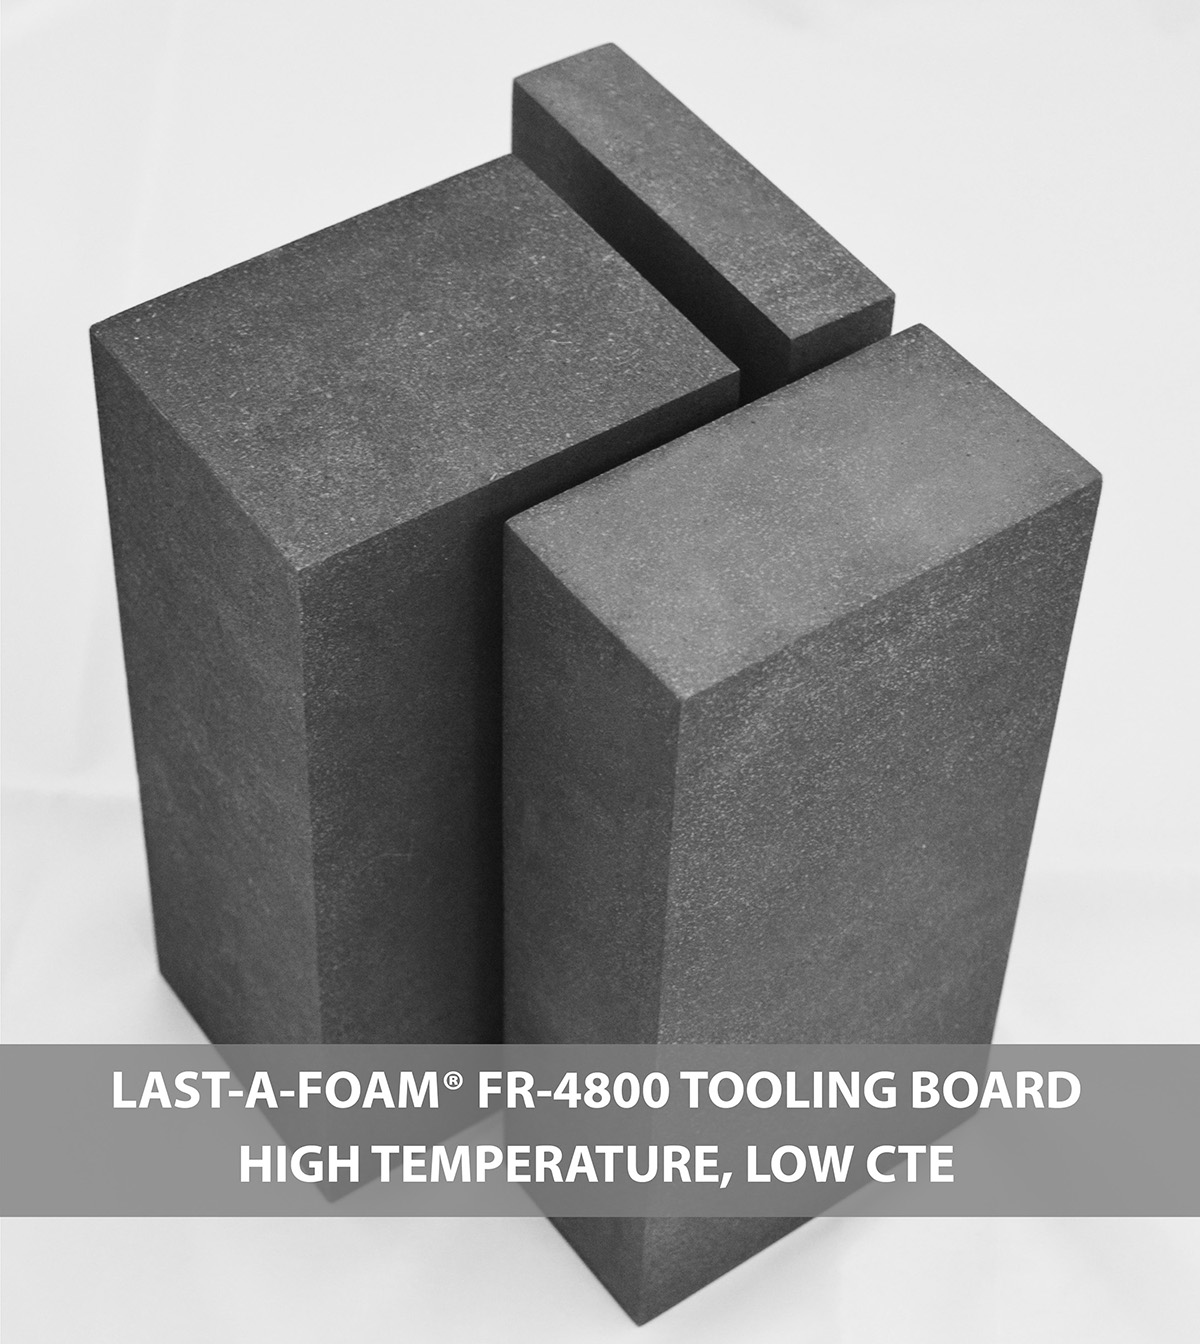 FR-4800 High Temp Tooling Board